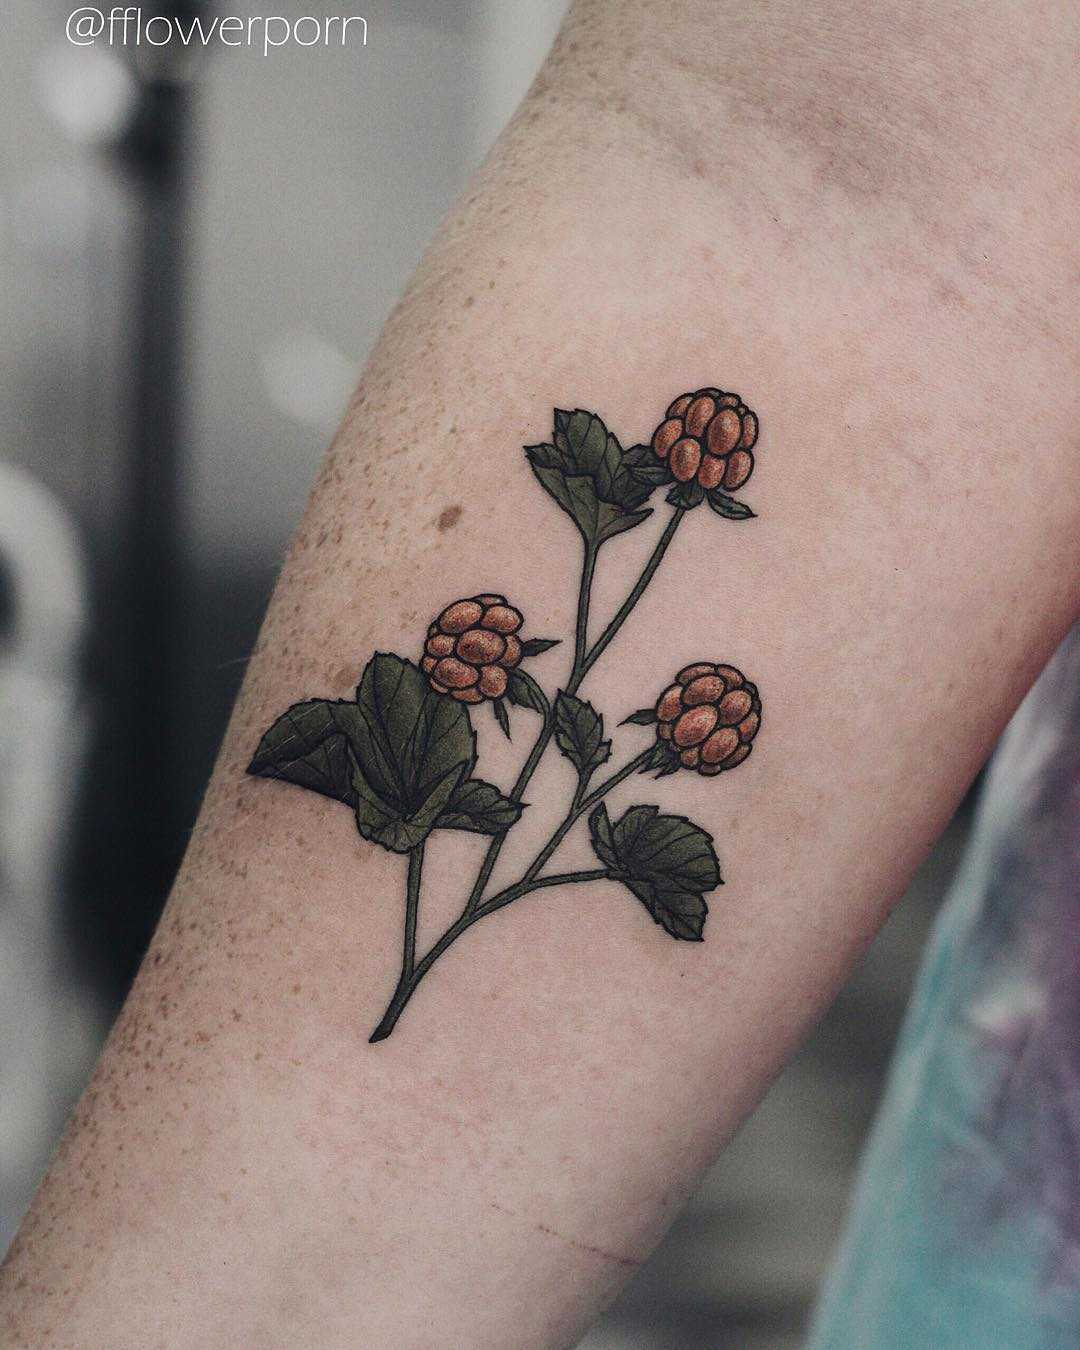 Cloudberry tattoo on the forearm